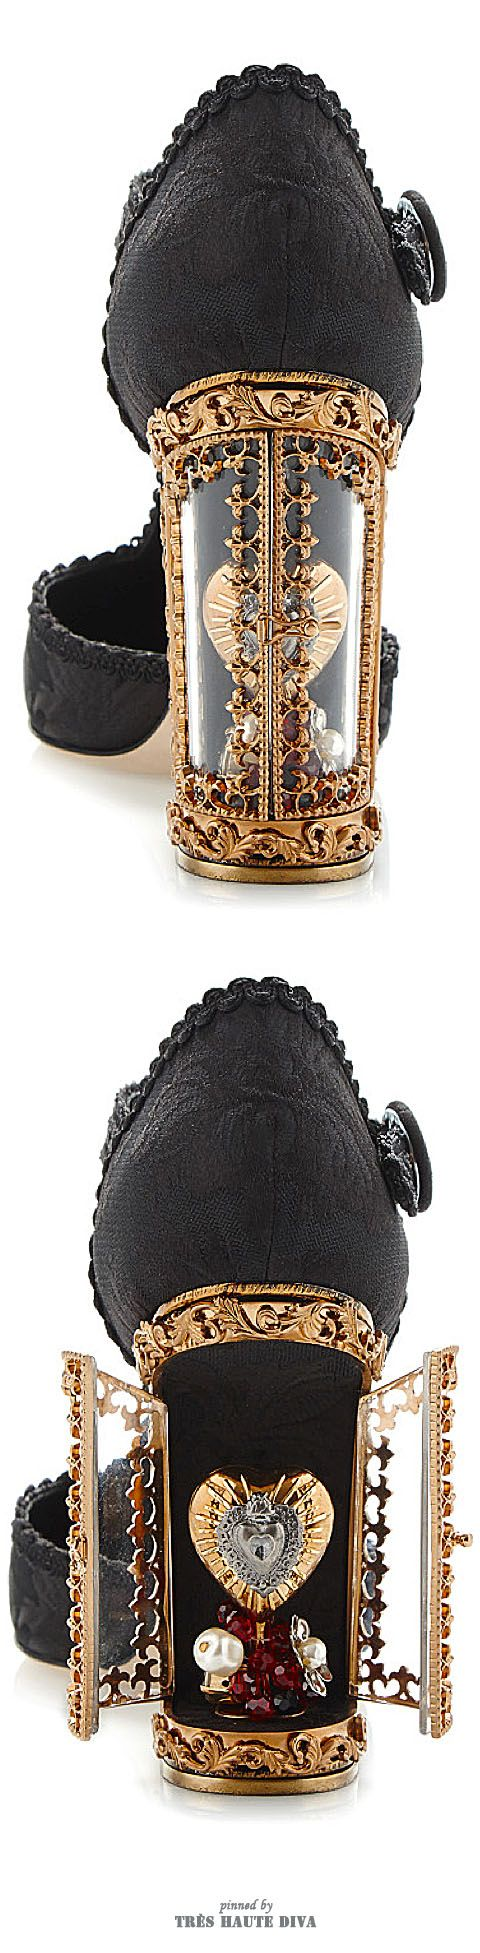 Dolce & Gabbana Black Jacquard T-Strap Mary Jane With Window Pane Pump ♔ SS 2015